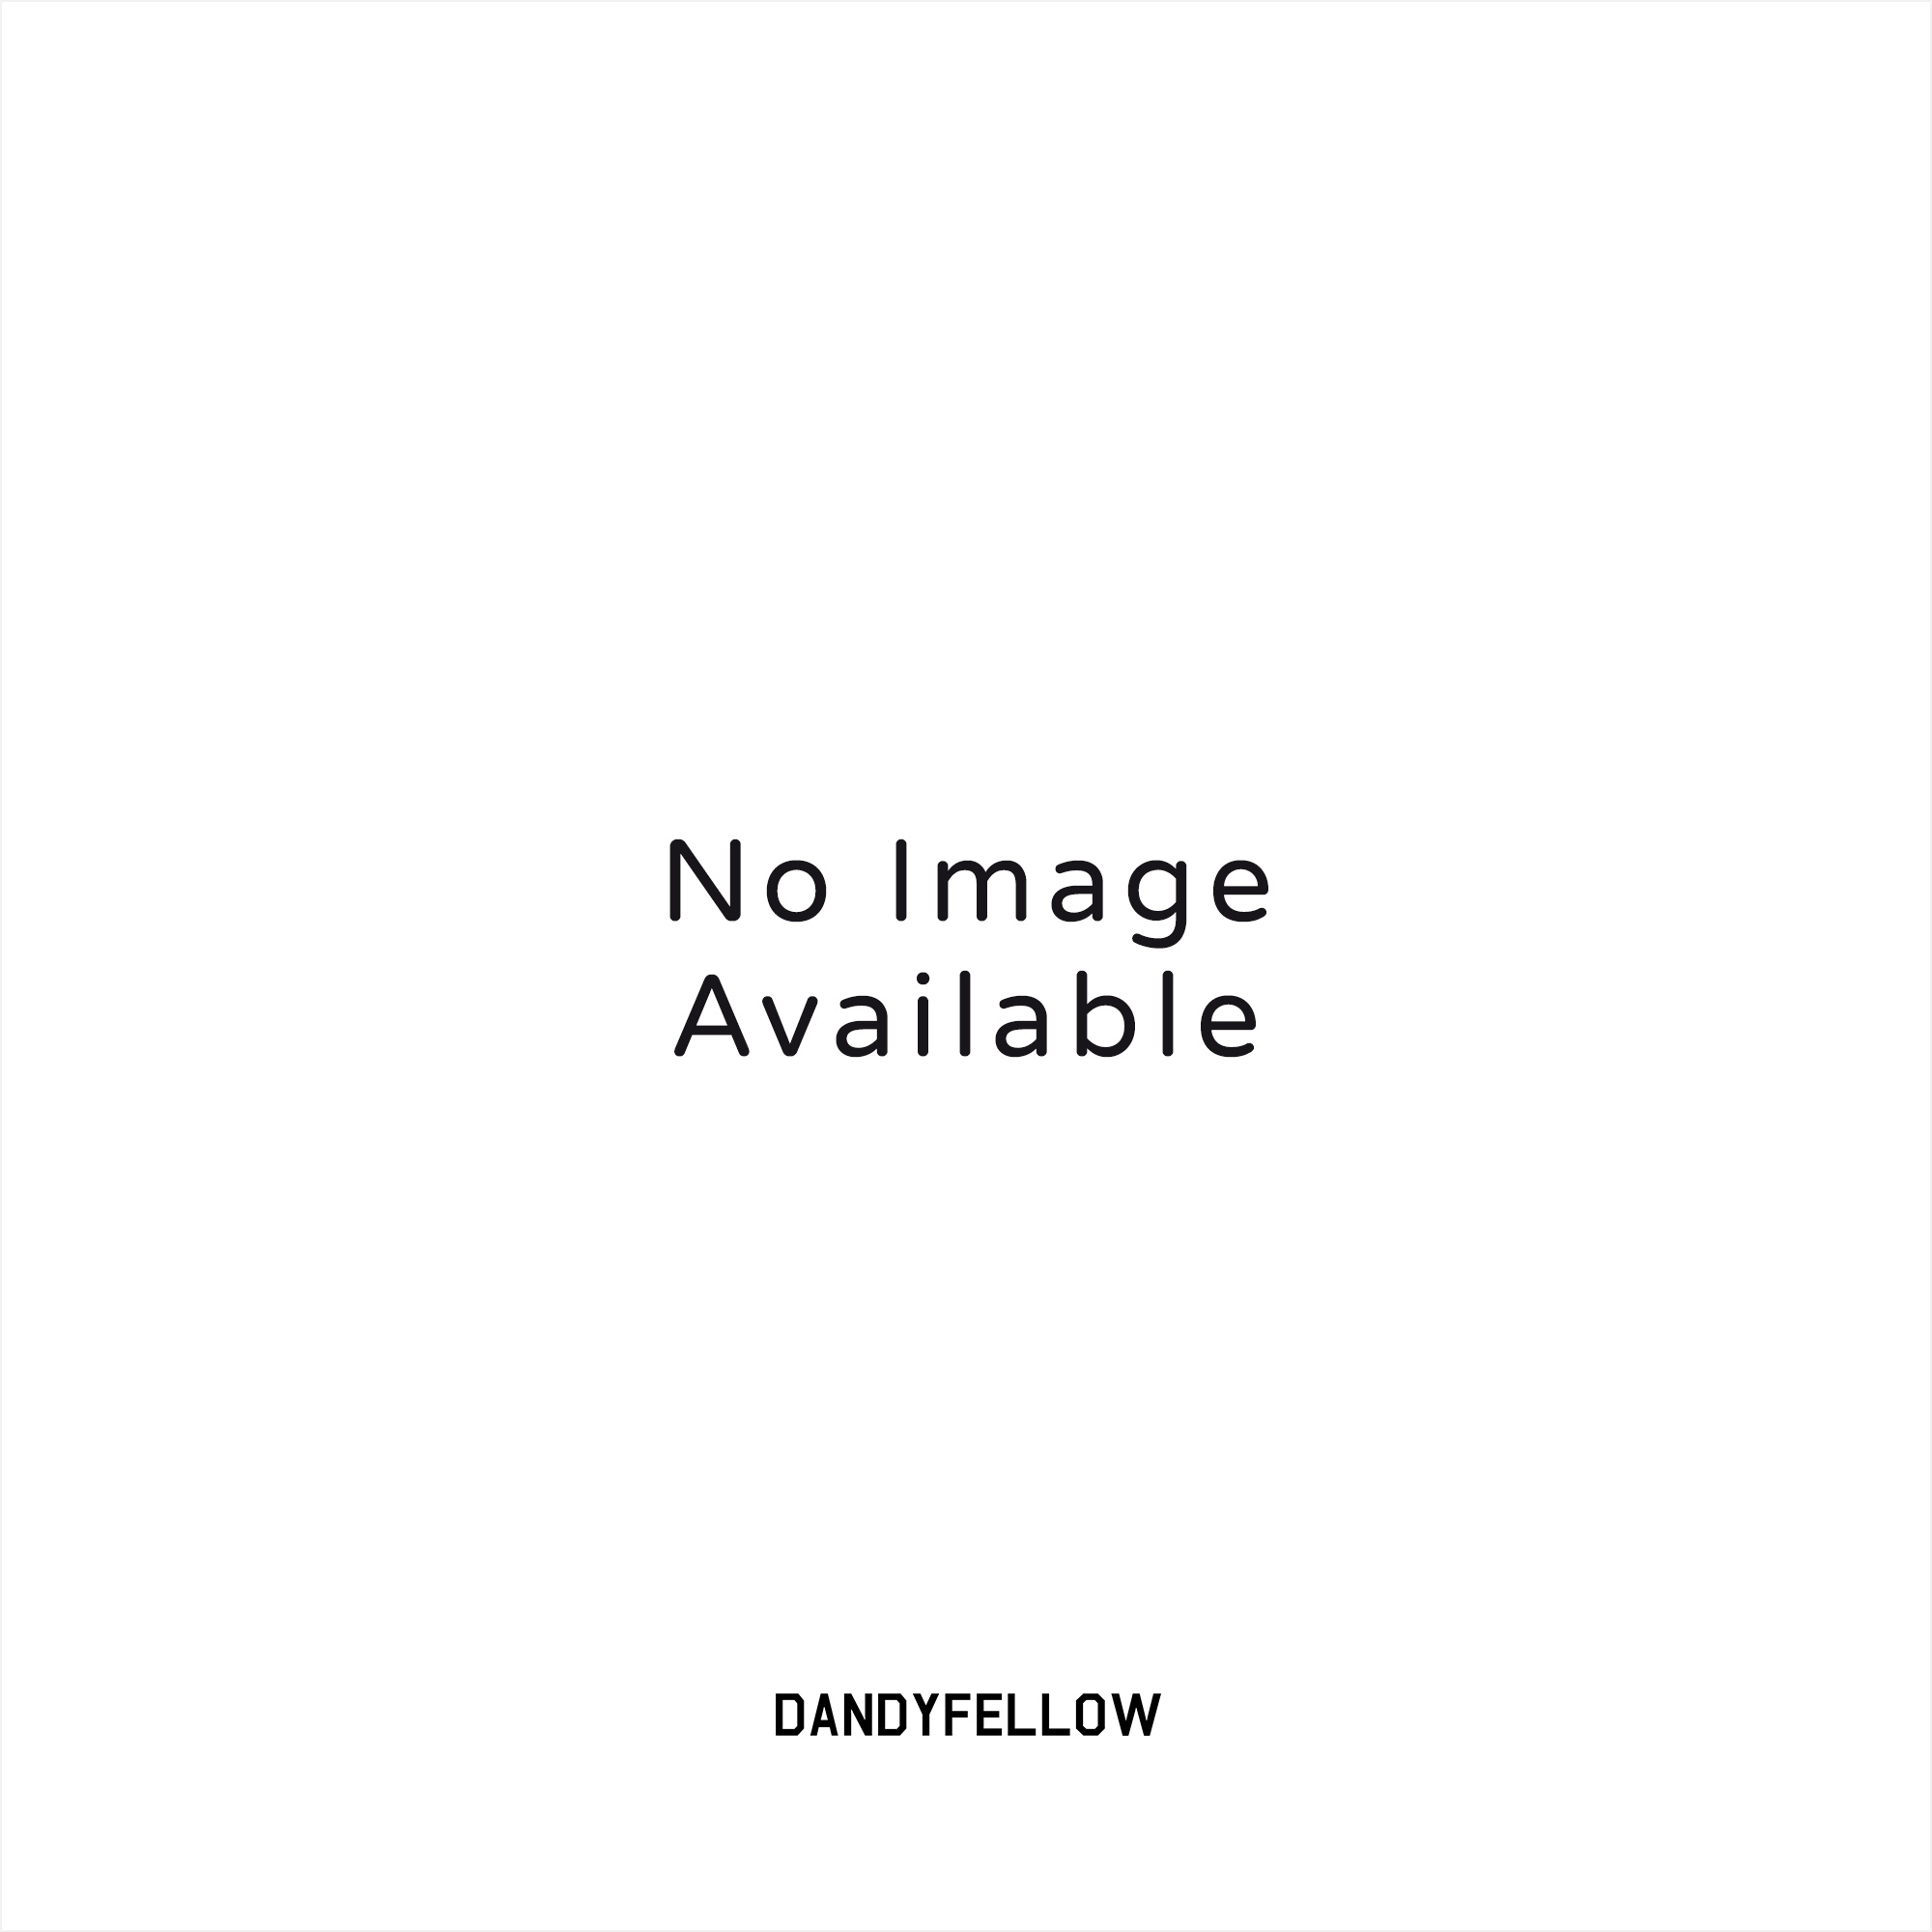 e43a5b0606e7 Adidas Originals Deerupt Runner (Black   White) at Dandy Fellow